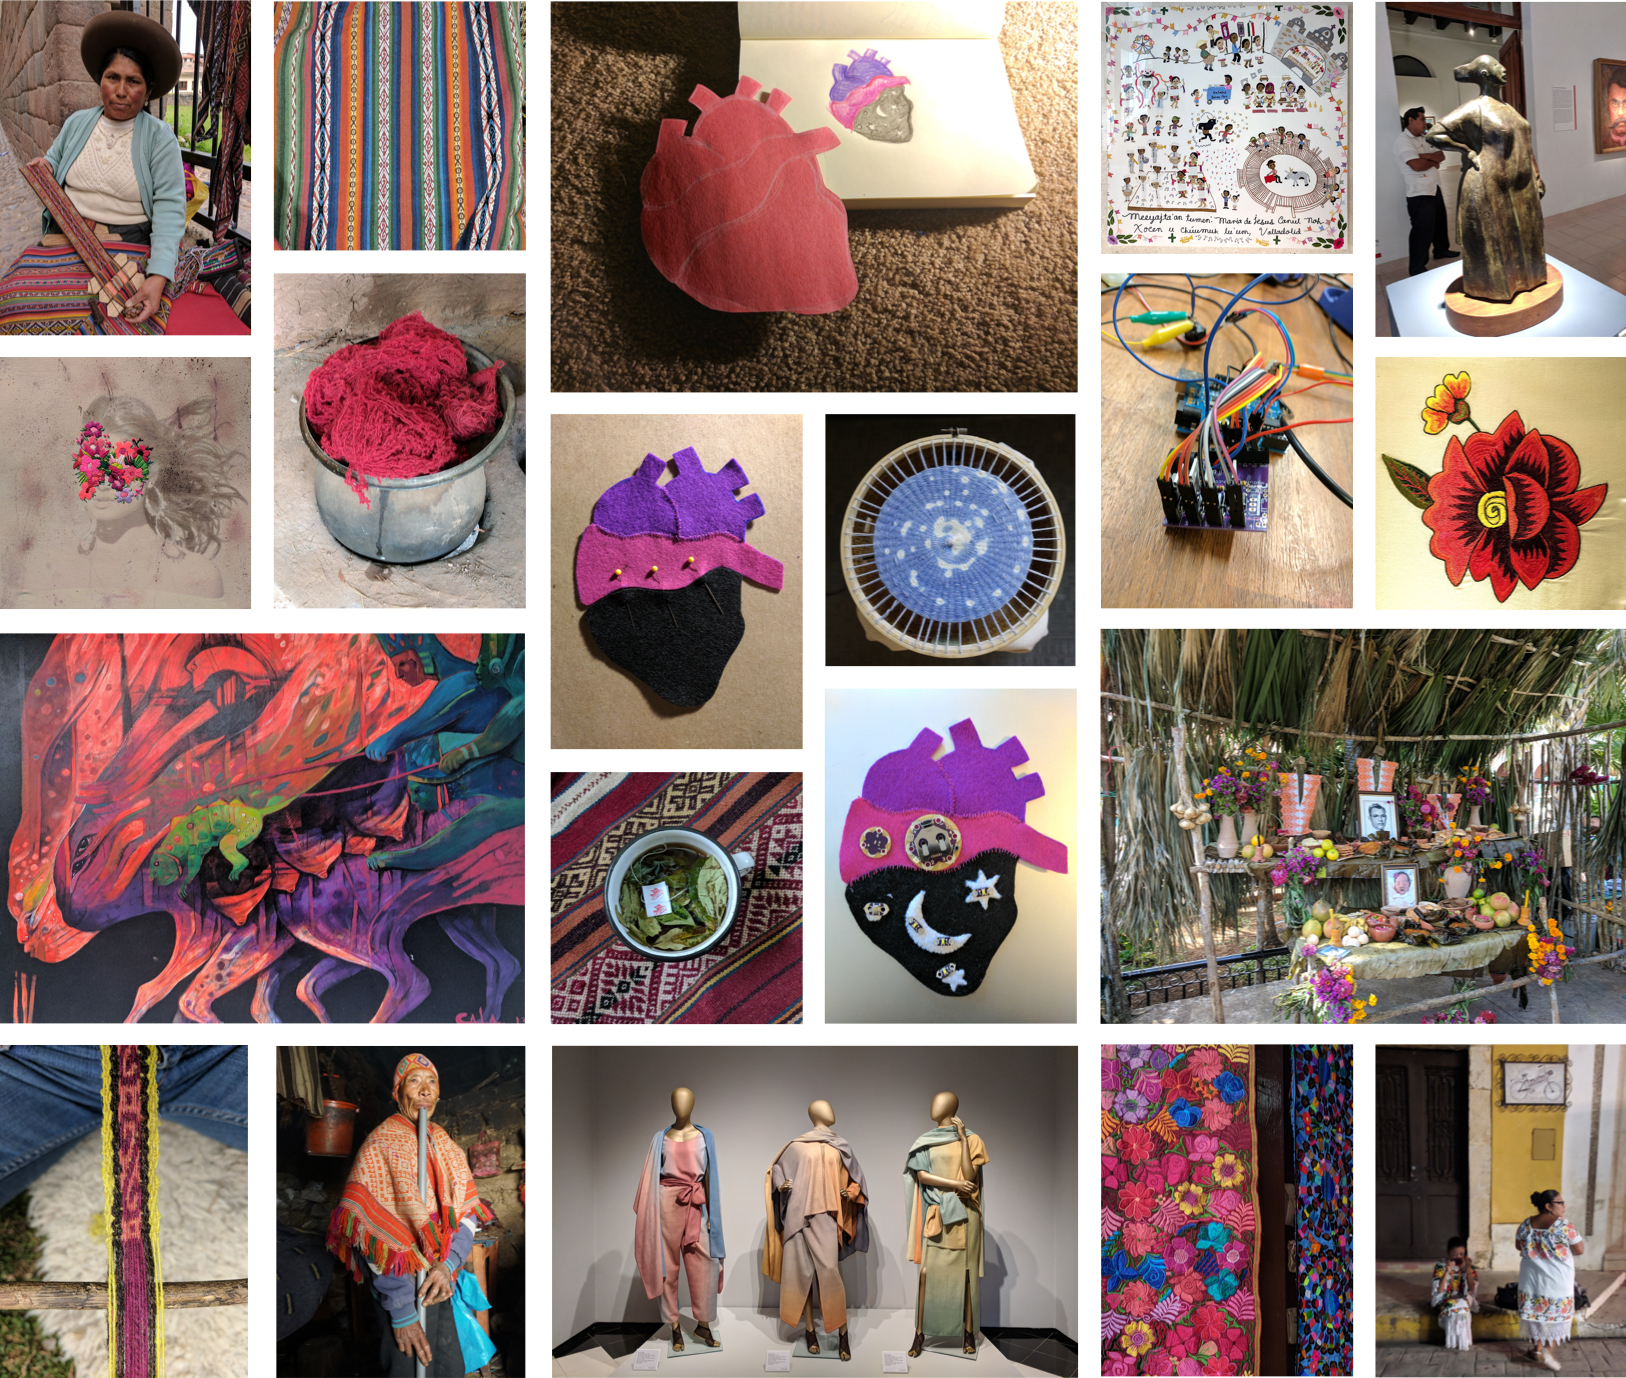 Moodboard of the inspiring art, craft and tech I've been experiencing in the last few months